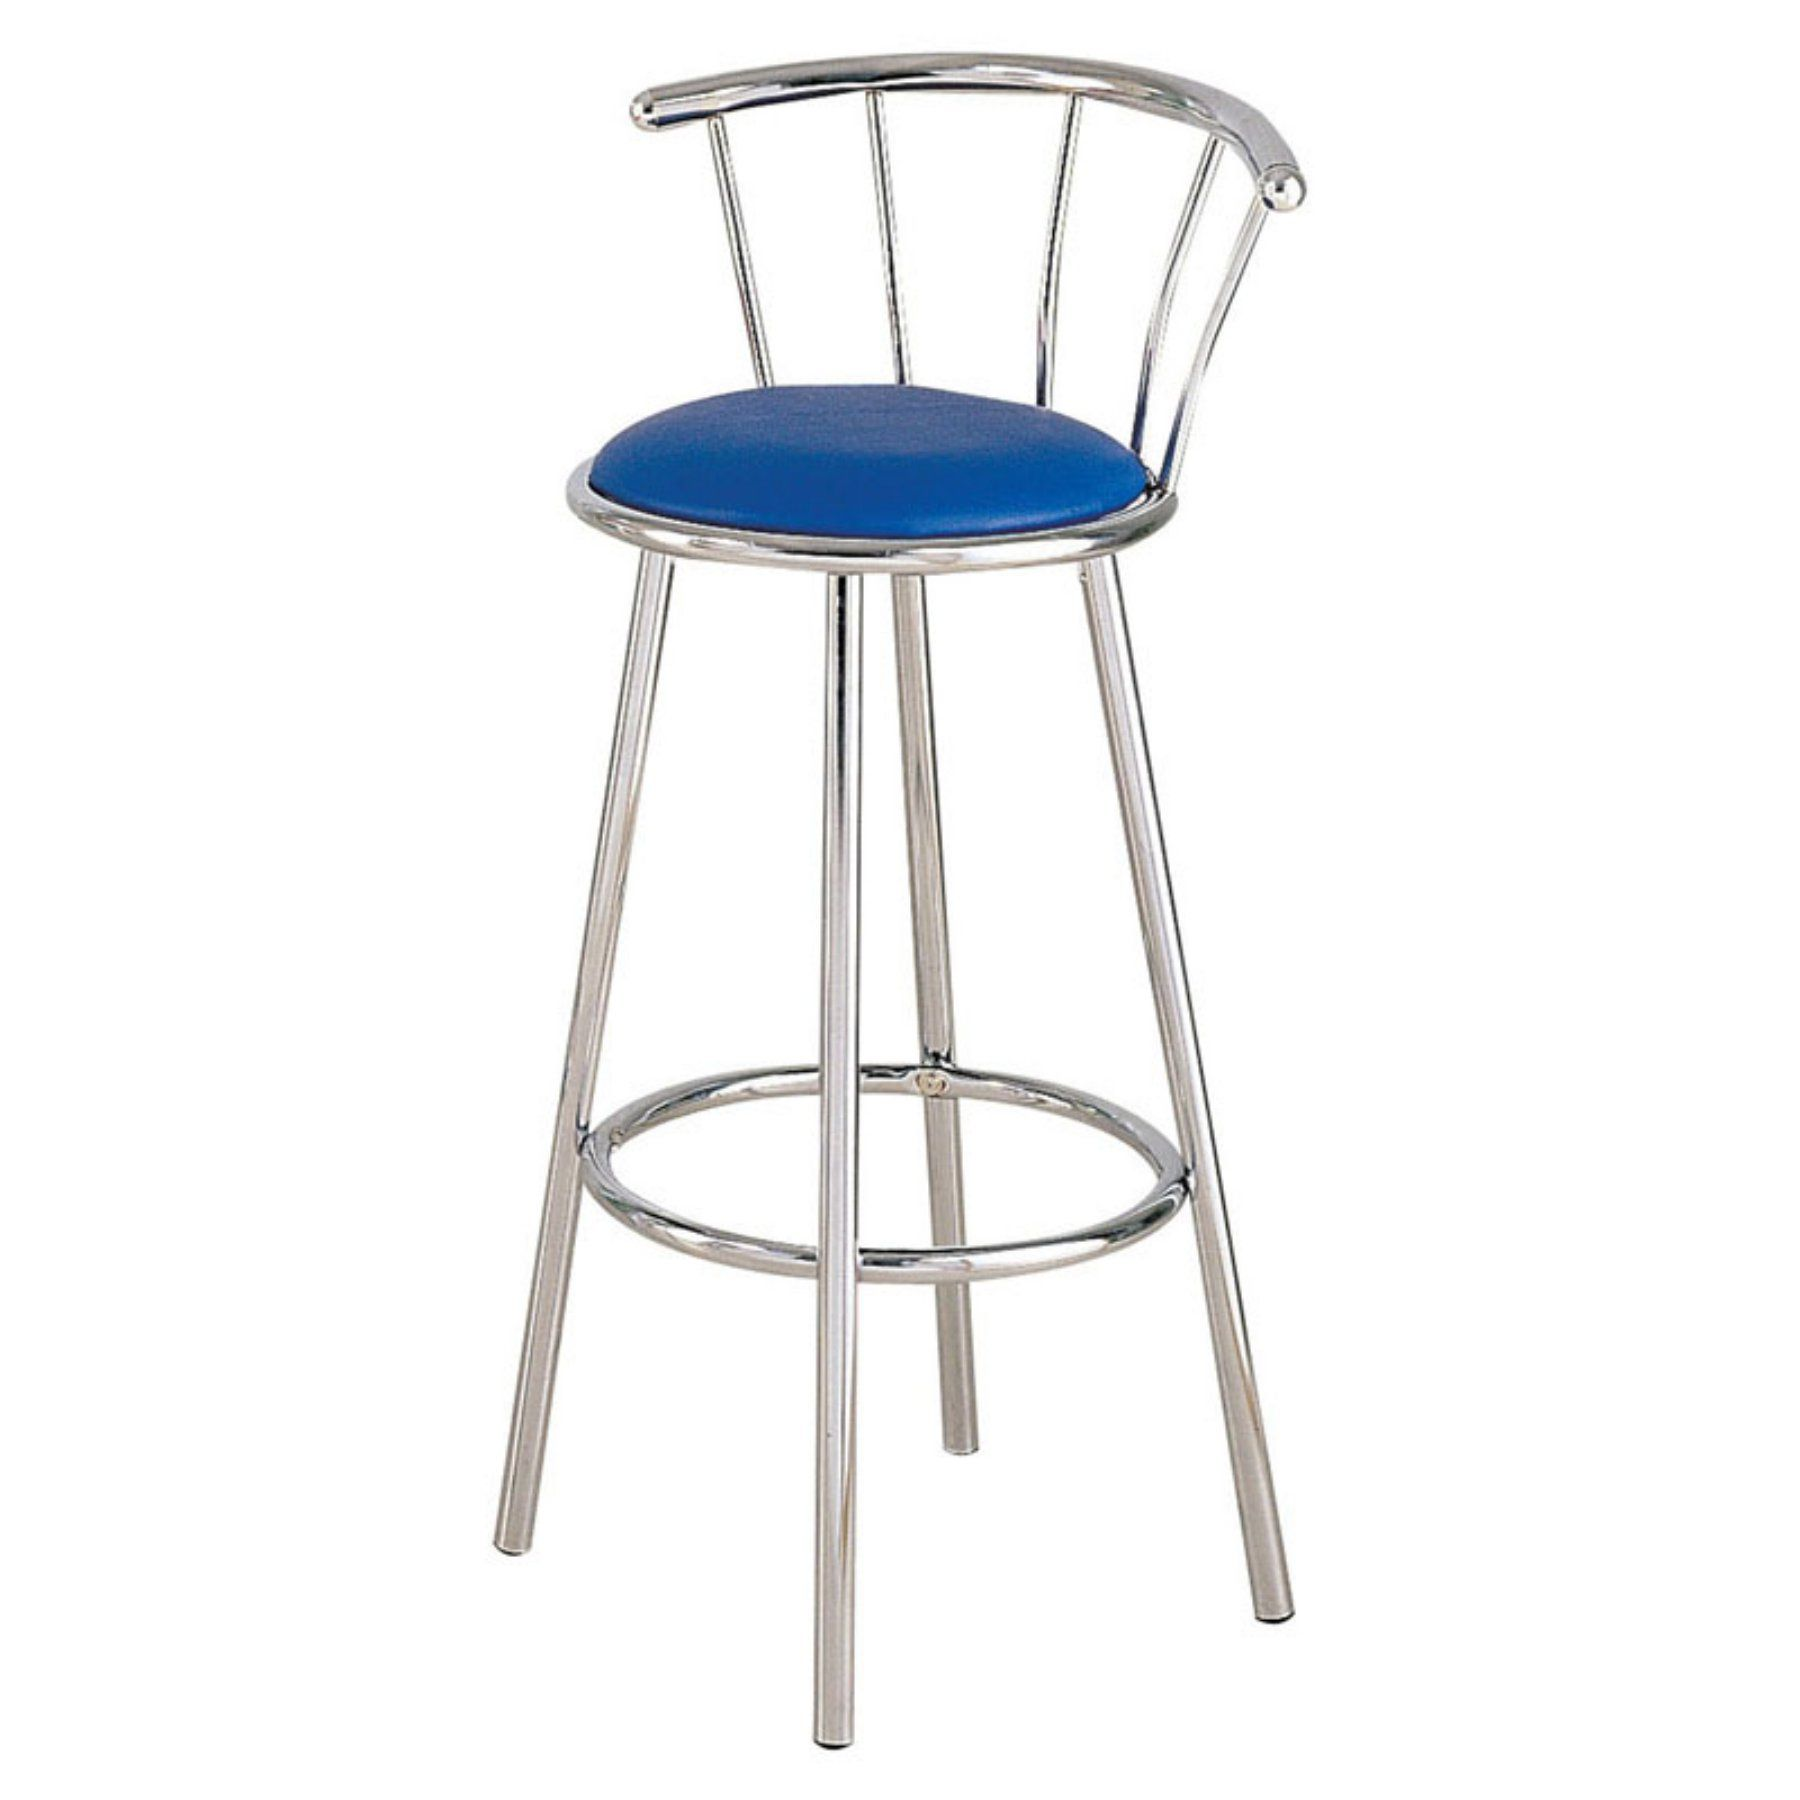 Awesome Acme Swivel Bar Stool